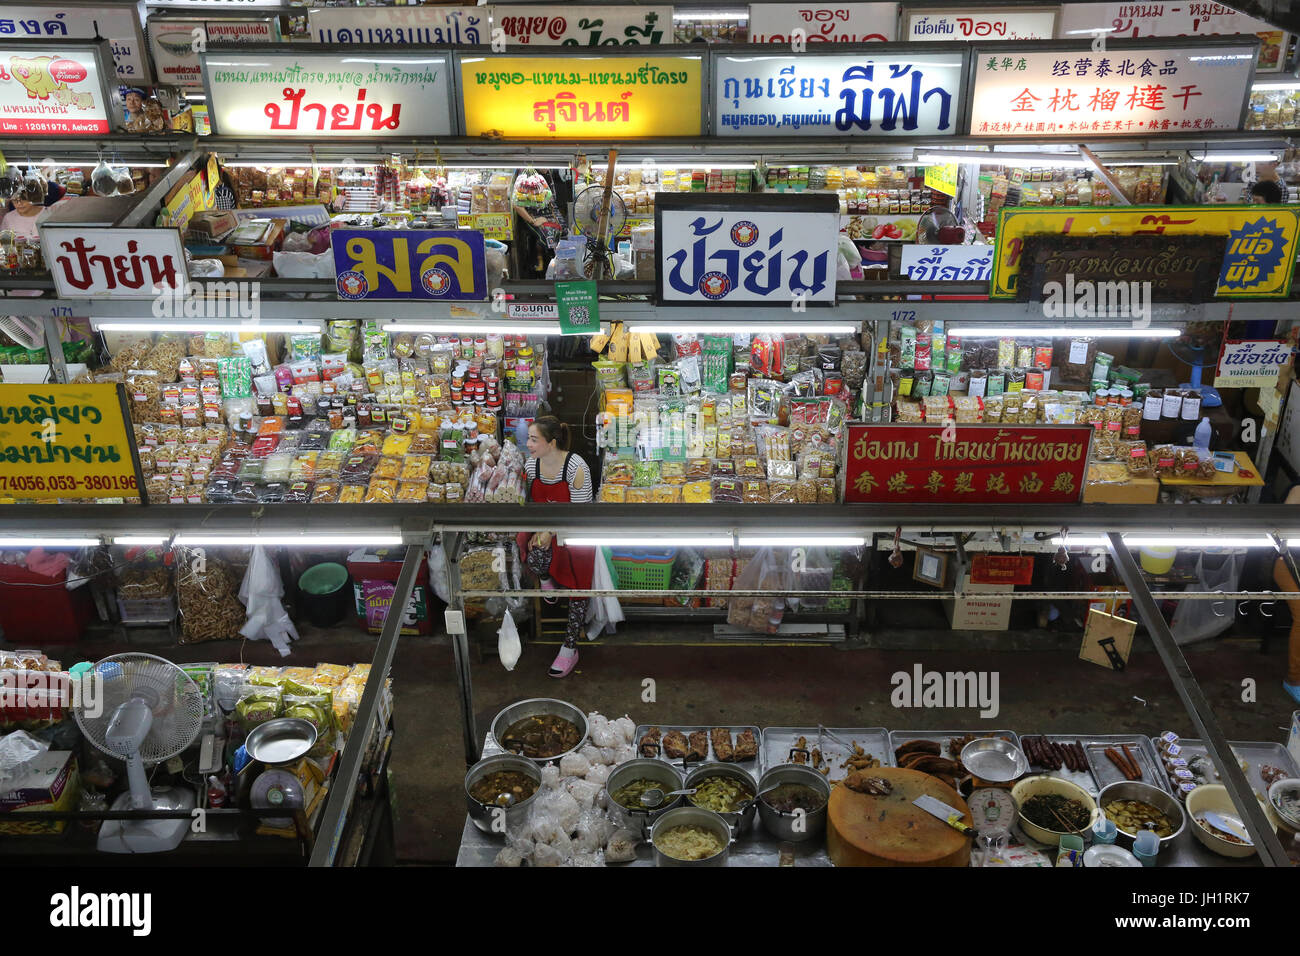 Indoor market in Chiang Mai. Thailand. - Stock Image